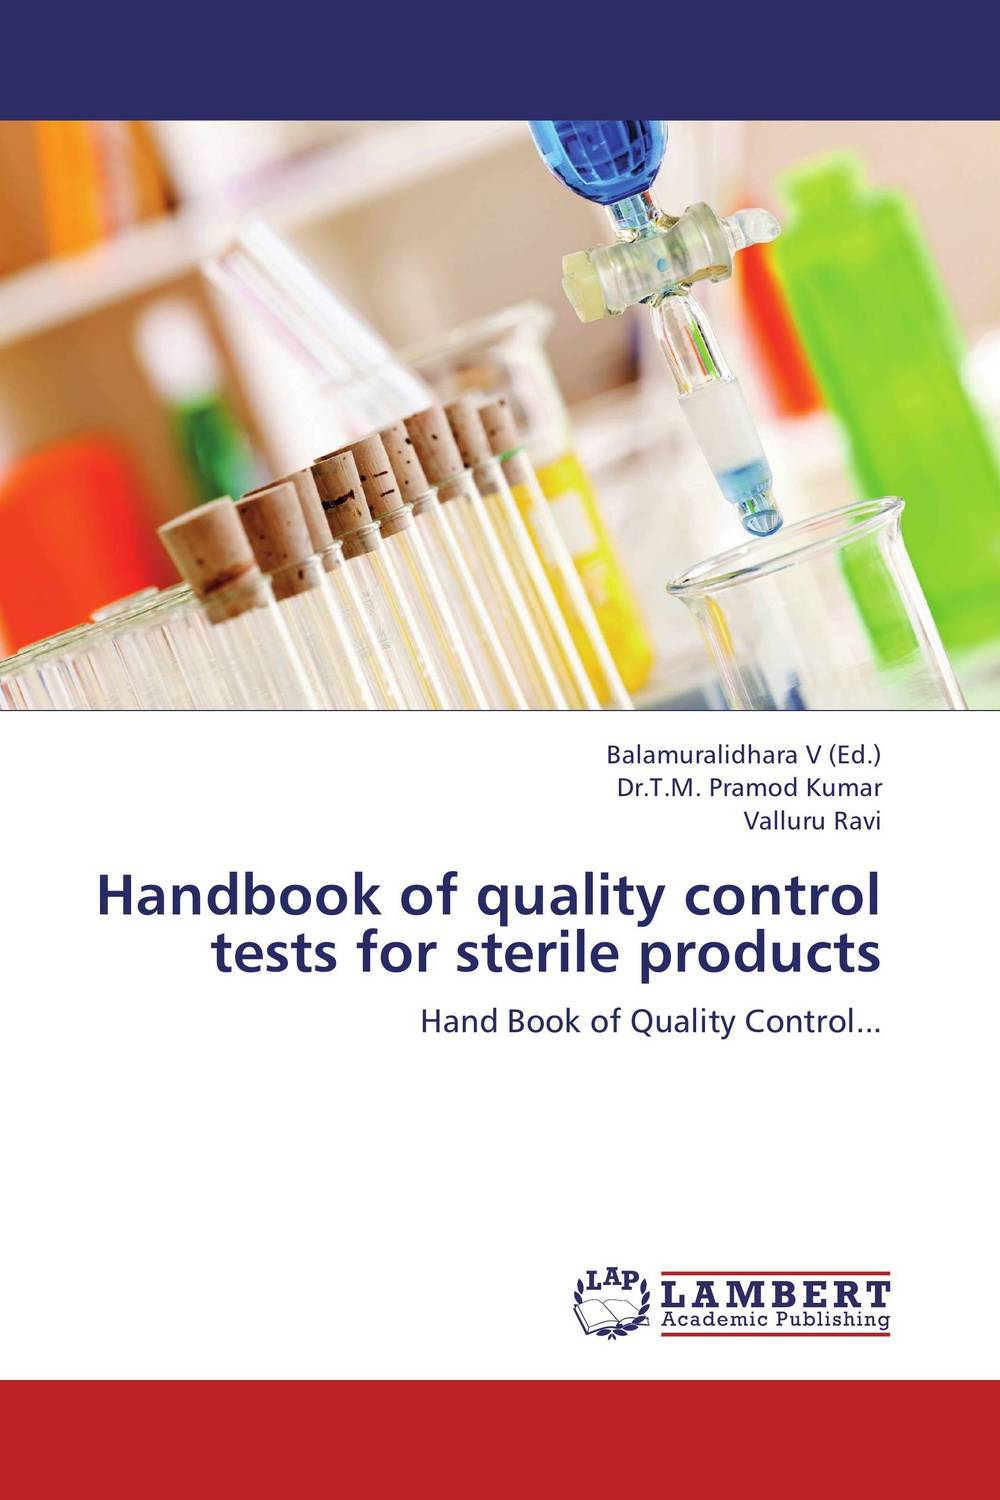 Handbook of quality control tests for sterile products handbook of quality control tests for sterile products